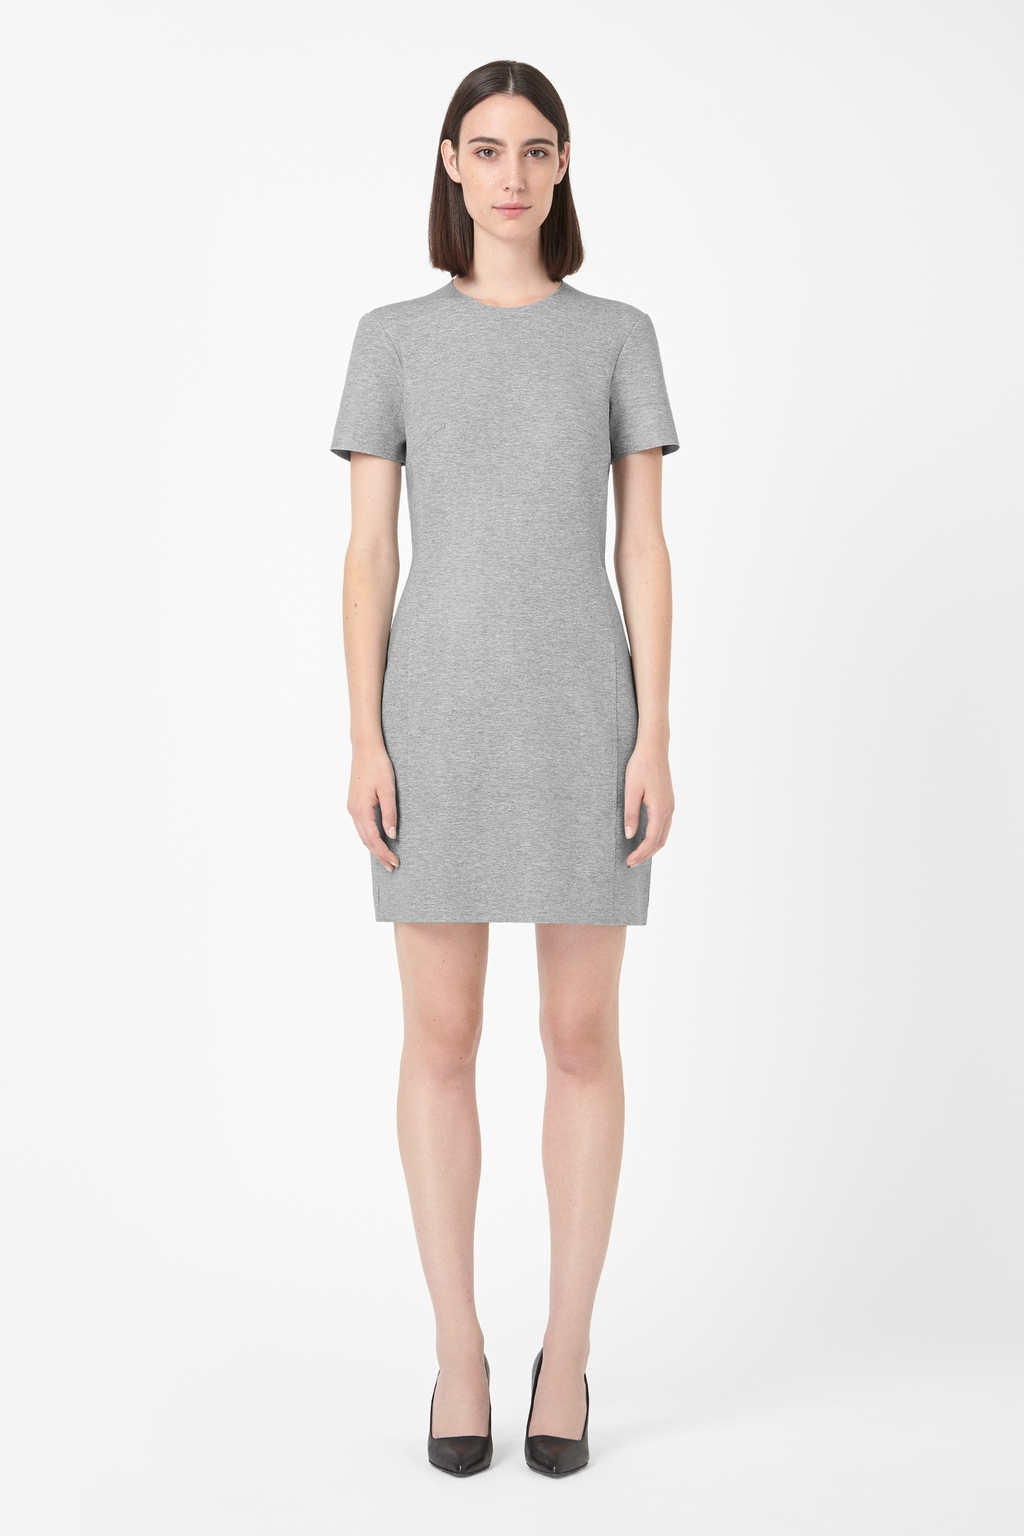 Clean Edge Jersey Dress - style: shift; length: mid thigh; fit: tailored/fitted; predominant colour: mid grey; occasions: casual, creative work; fibres: viscose/rayon - stretch; neckline: crew; sleeve length: short sleeve; sleeve style: standard; texture group: jersey - stretchy/drapey; pattern: marl; season: a/w 2014